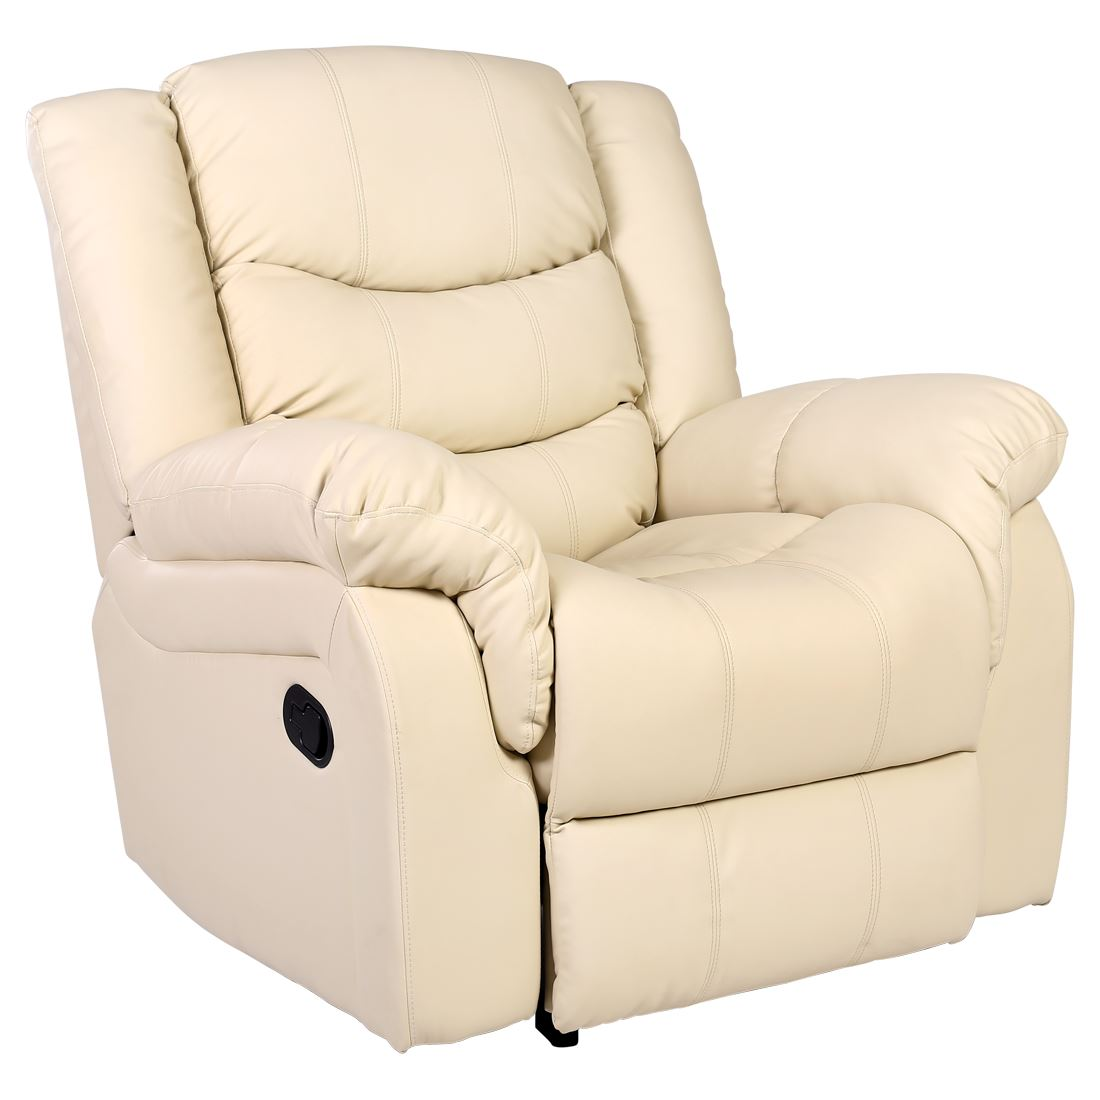 Item specifics  sc 1 st  eBay & SEATTLE CREAM LEATHER RECLINER ARMCHAIR SOFA HOME LOUNGE CHAIR ... islam-shia.org